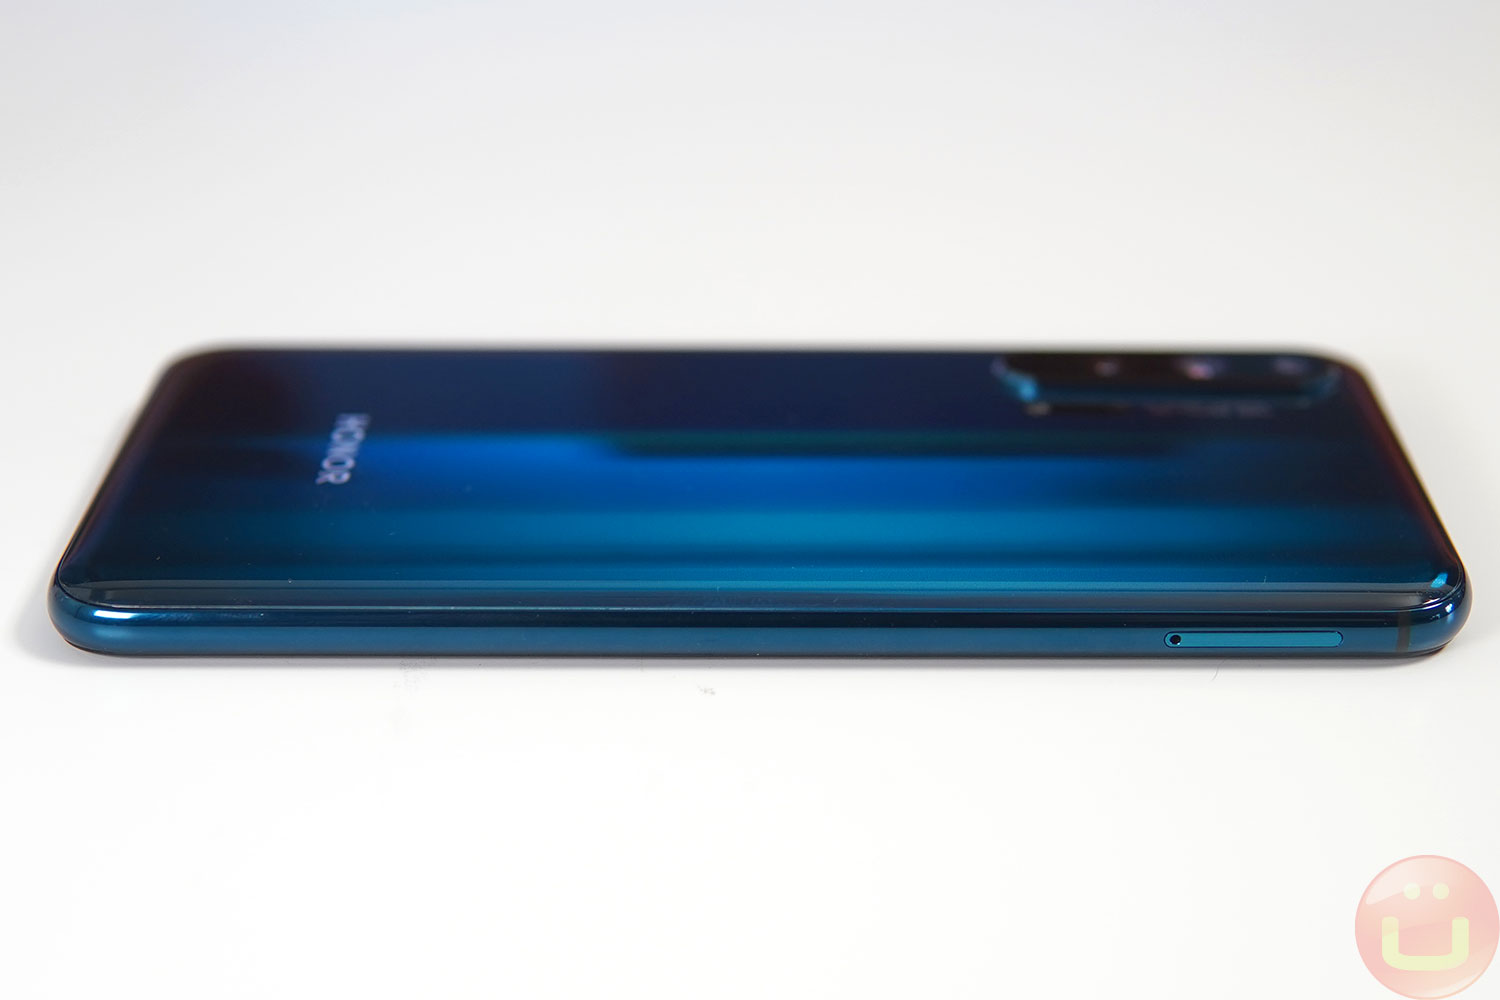 Honor 20 Pro and Honor 20 Just Launched in London - Teofilo net